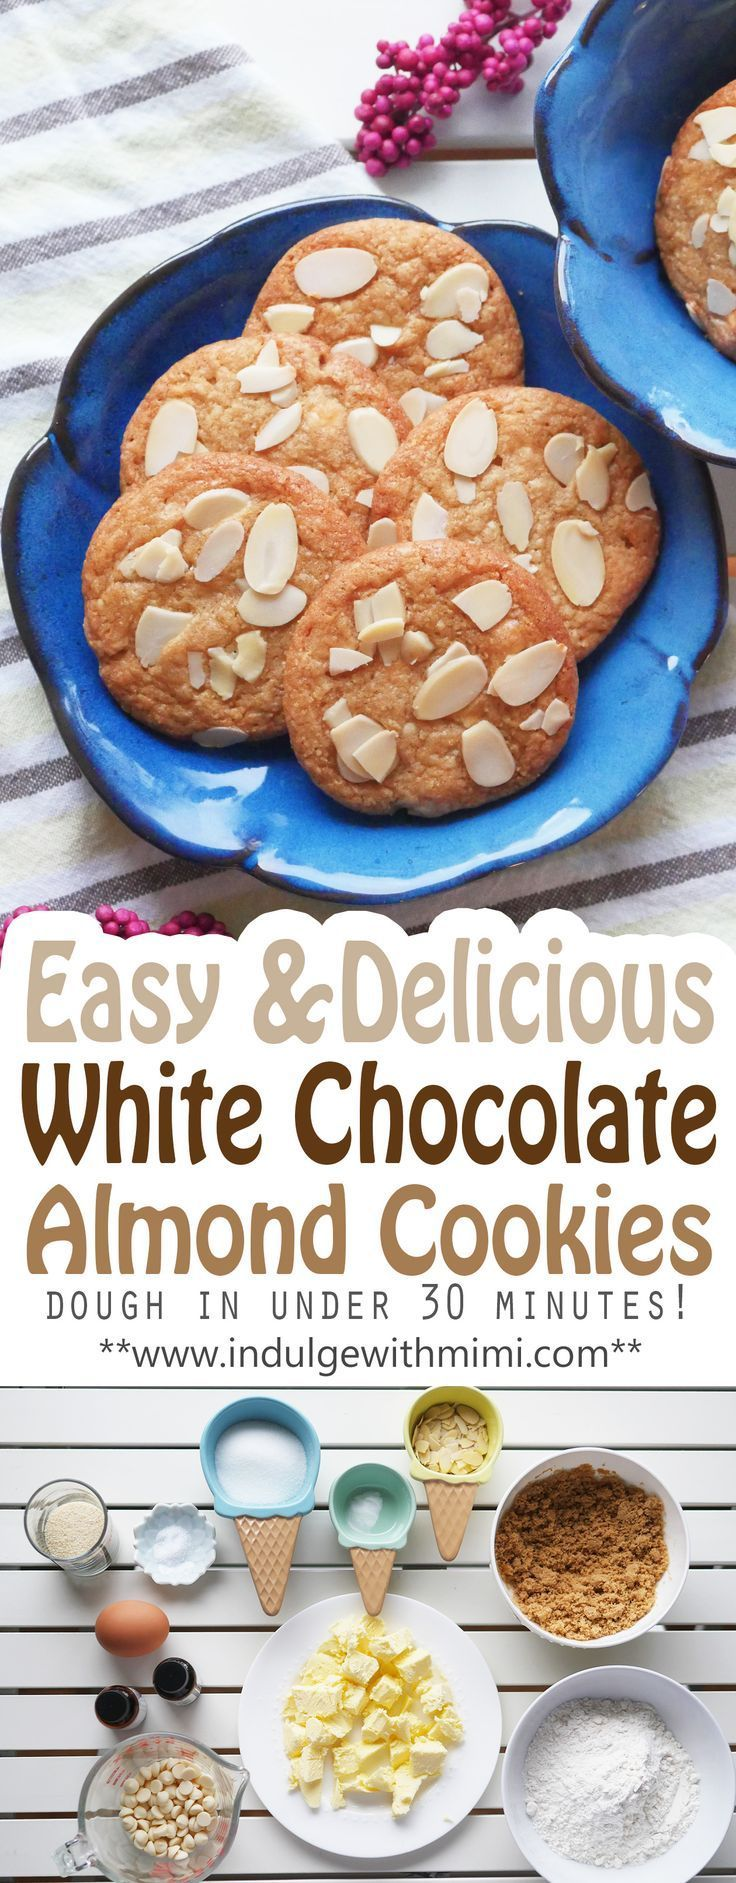 Easy and delicious White Chocolate Almond Cookies. Prepare dough in under 30 min. Video and recipe.